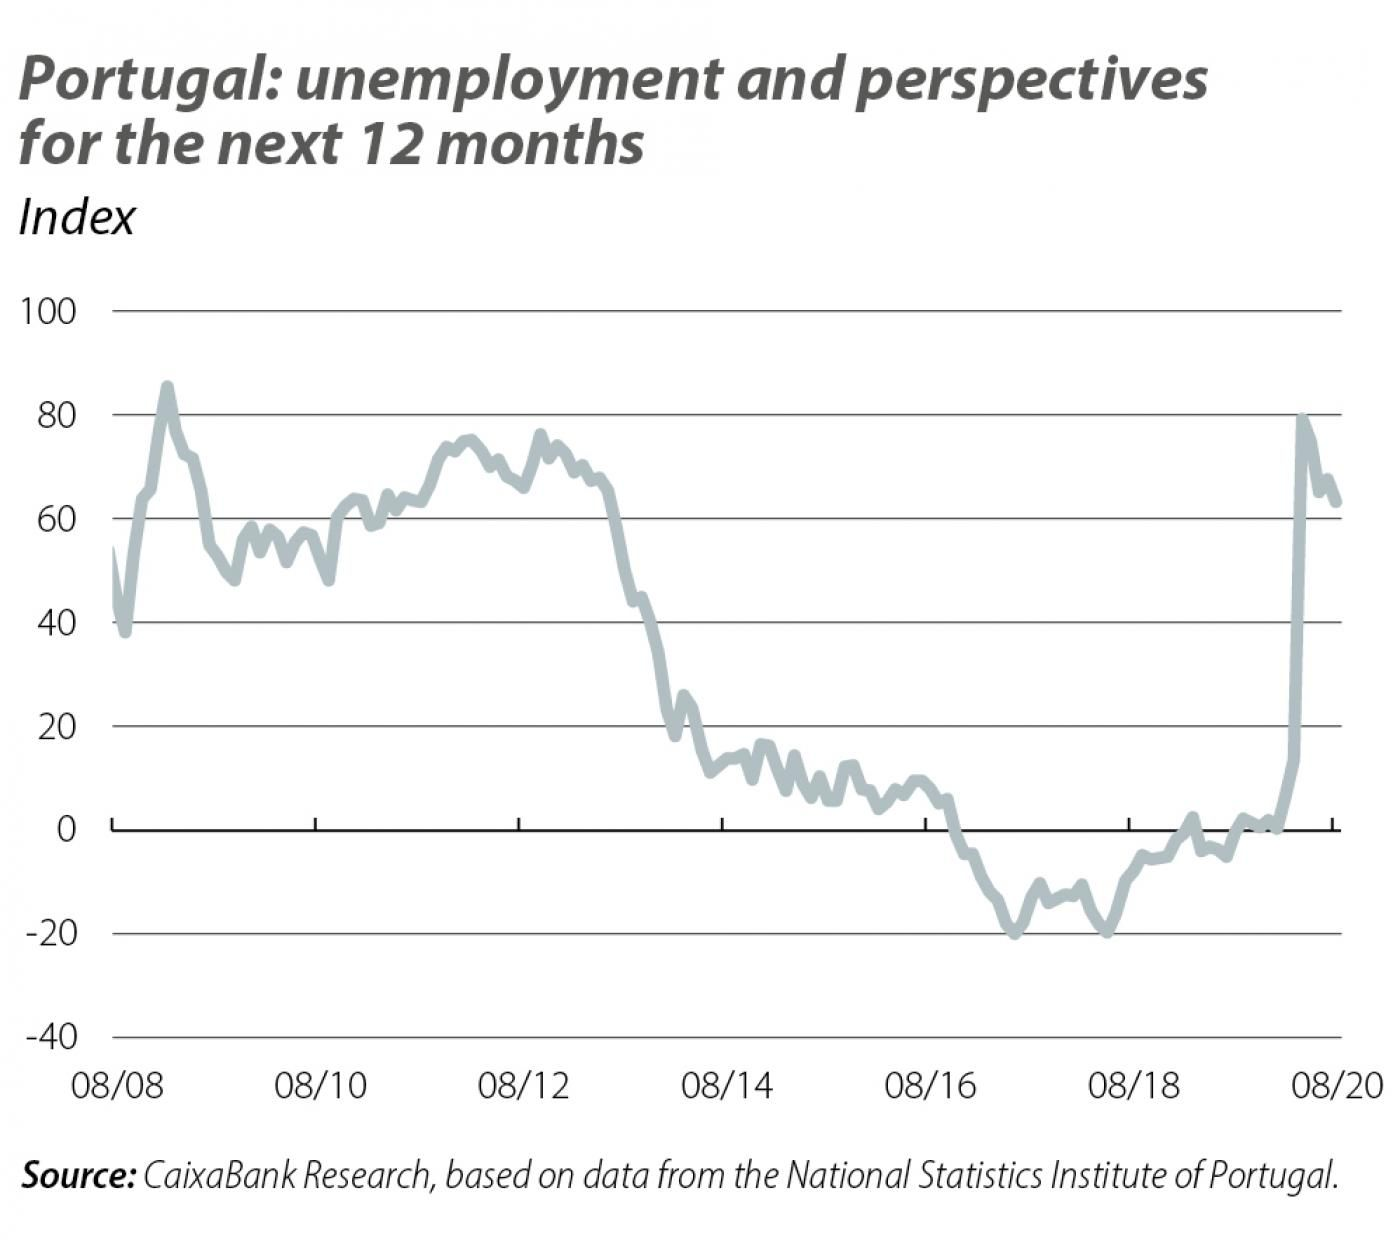 Potugal: unemployment and perspectives for the next 12 months